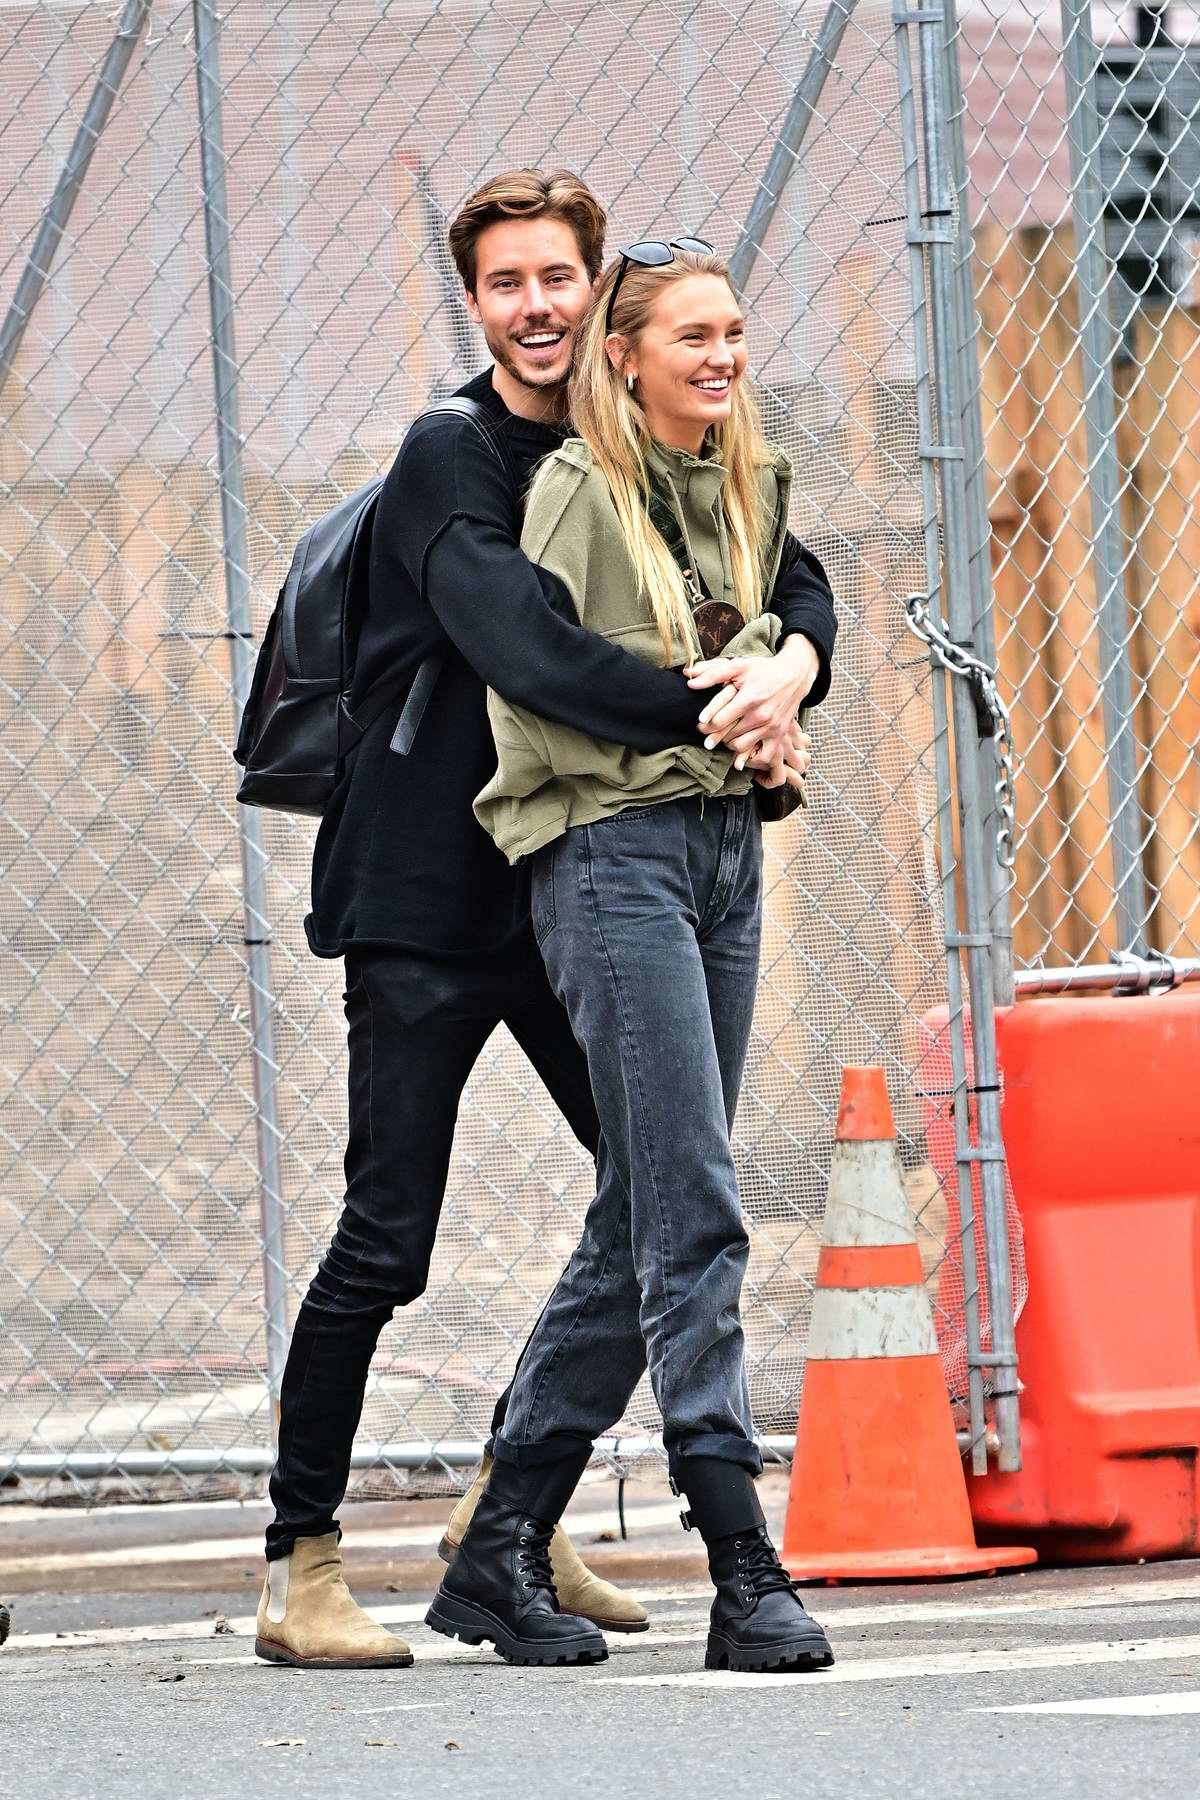 Romee Strijd enjoys a stroll with boyfriend Laurens van Leeuwen in New York City